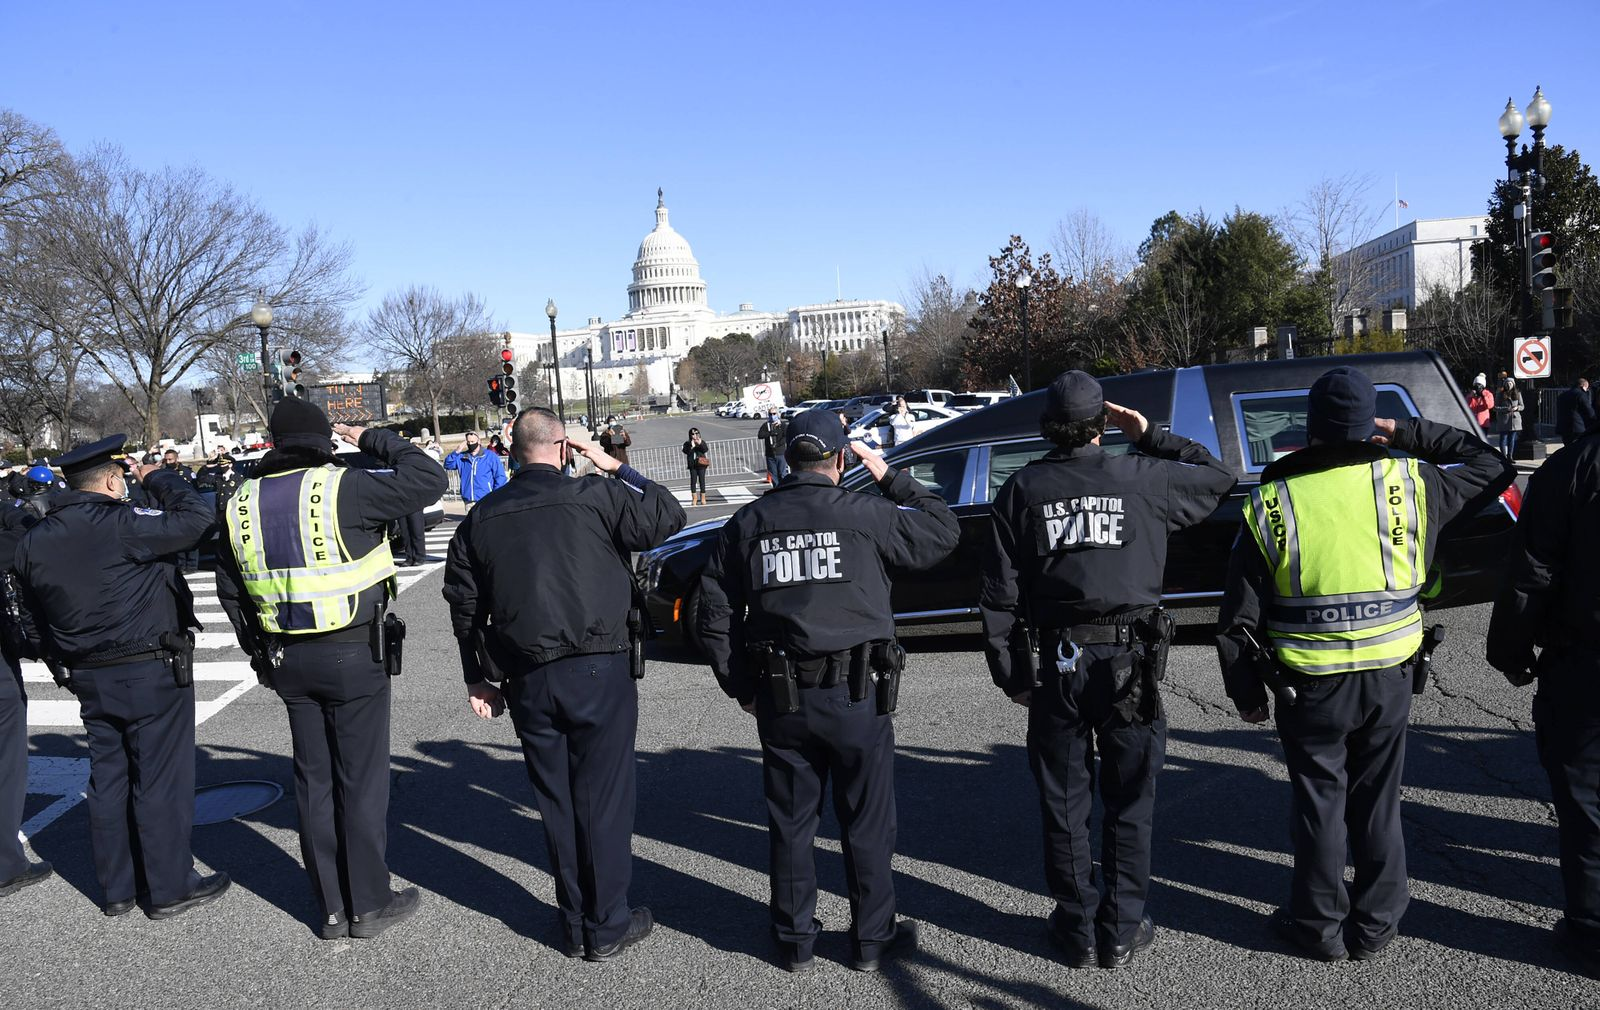 Capitol Hill police salute the passing of the funeral hearse for slain Officer Brian Sicknick, who died in the rioting